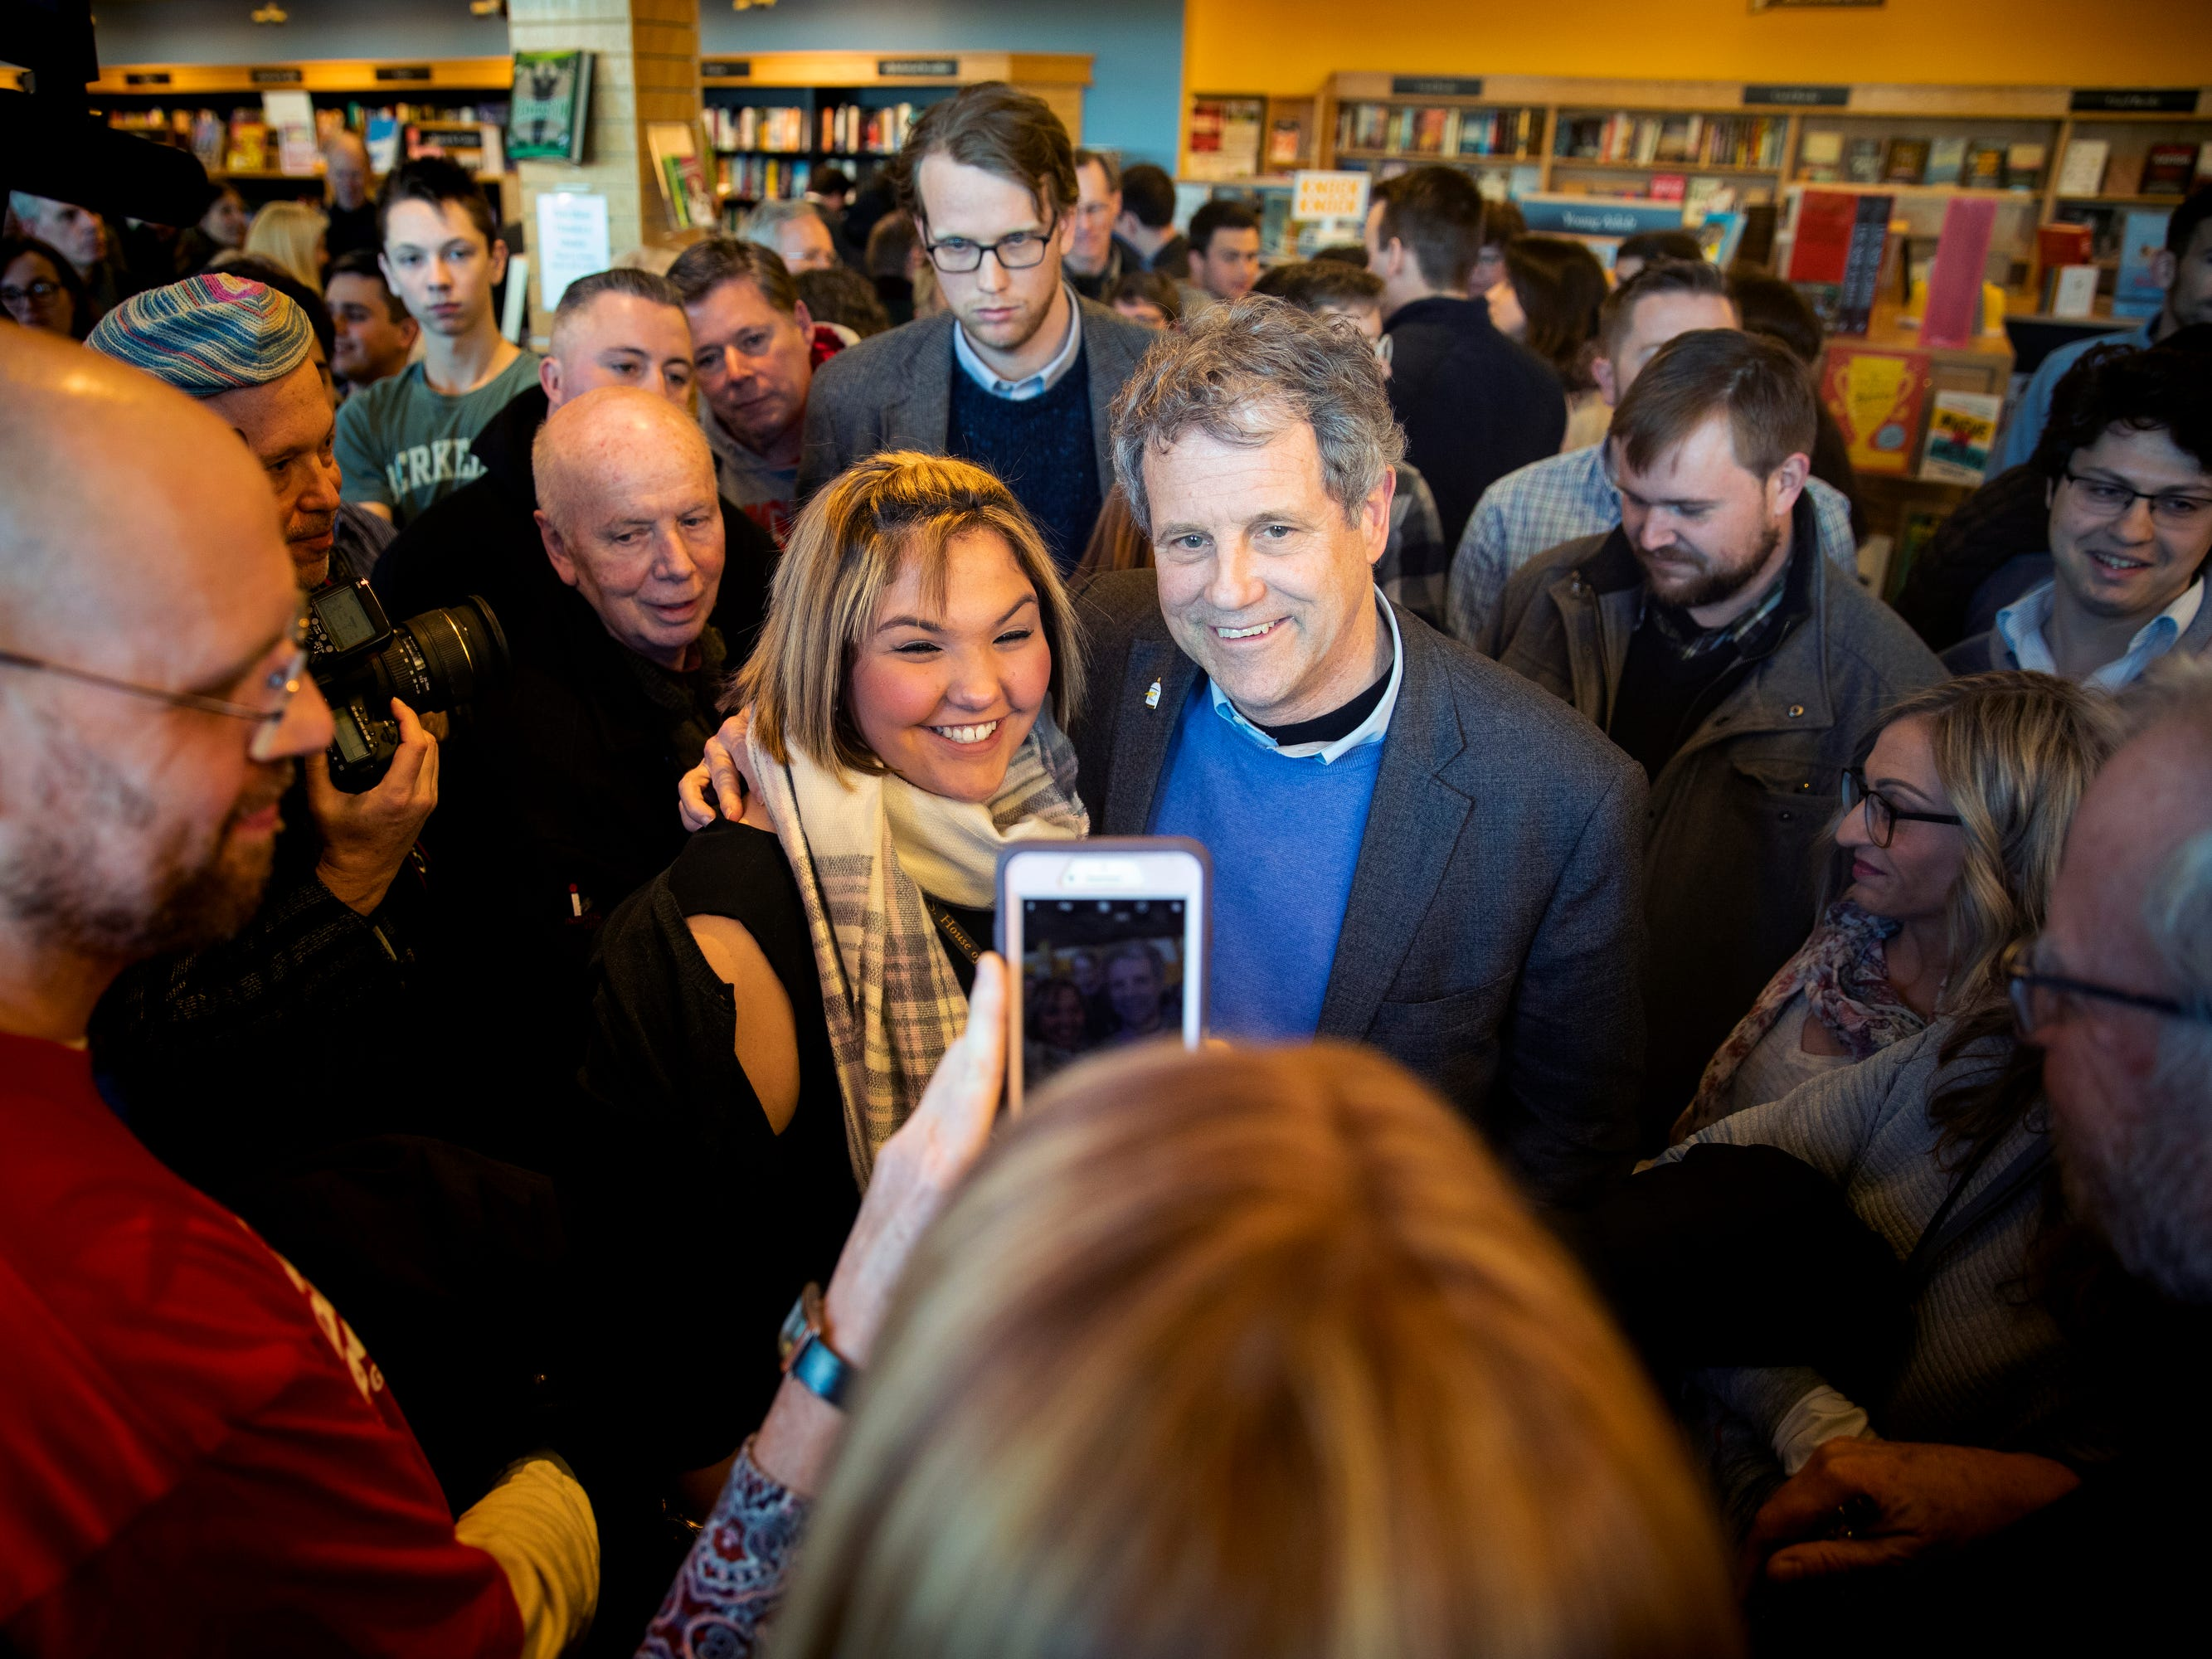 Senator Sherrod Brown poses for pictures with people during a meet and greet at Gibson's Bookstore in Concord, N.H. Saturday, February 9, 2019. Brown is considering a presidential run. He visited Iowa last week and will travel to Nevada and South Carolina in the next few weeks.